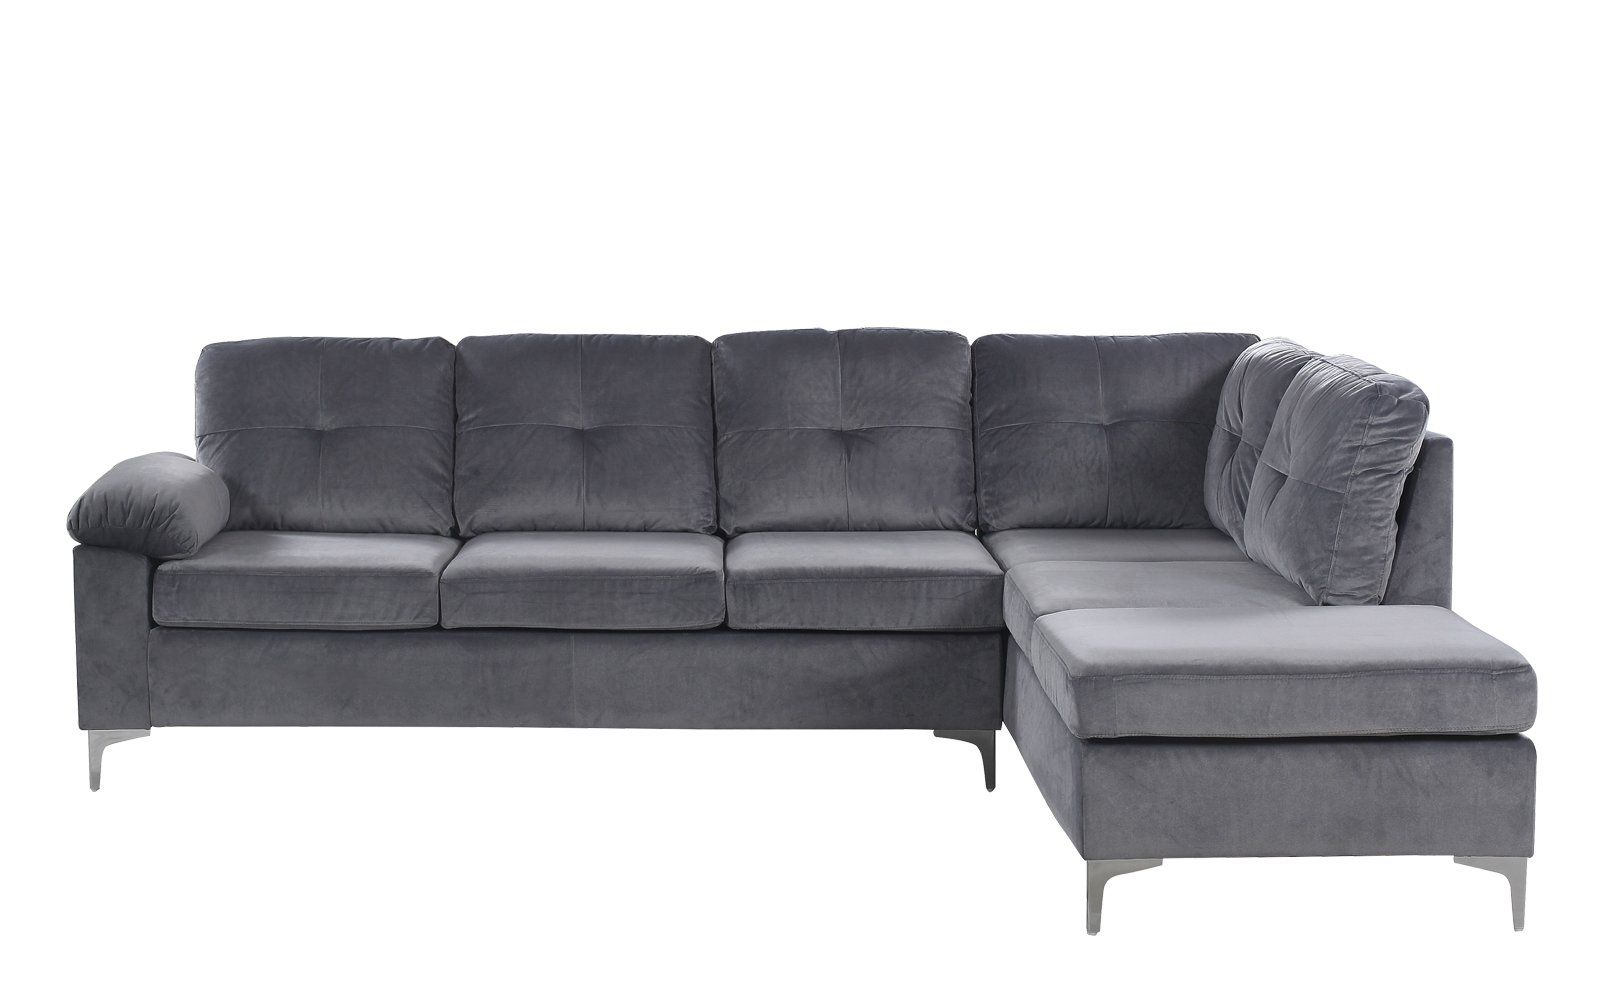 Helsinki Modern Tufted Brush Microfiber Sectional Sofa